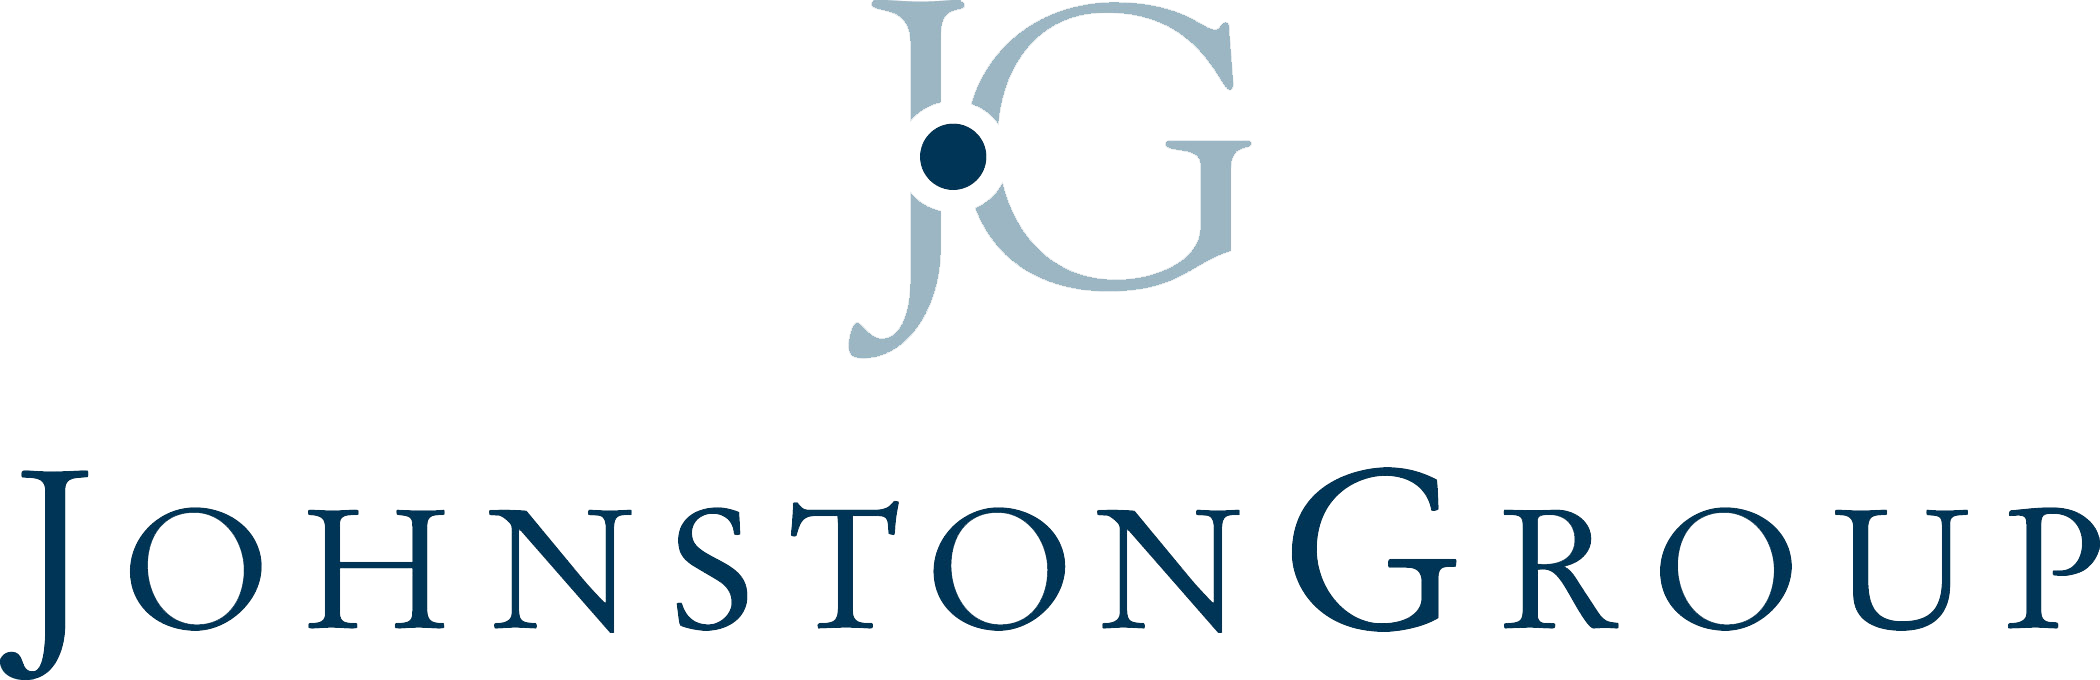 johnston-group